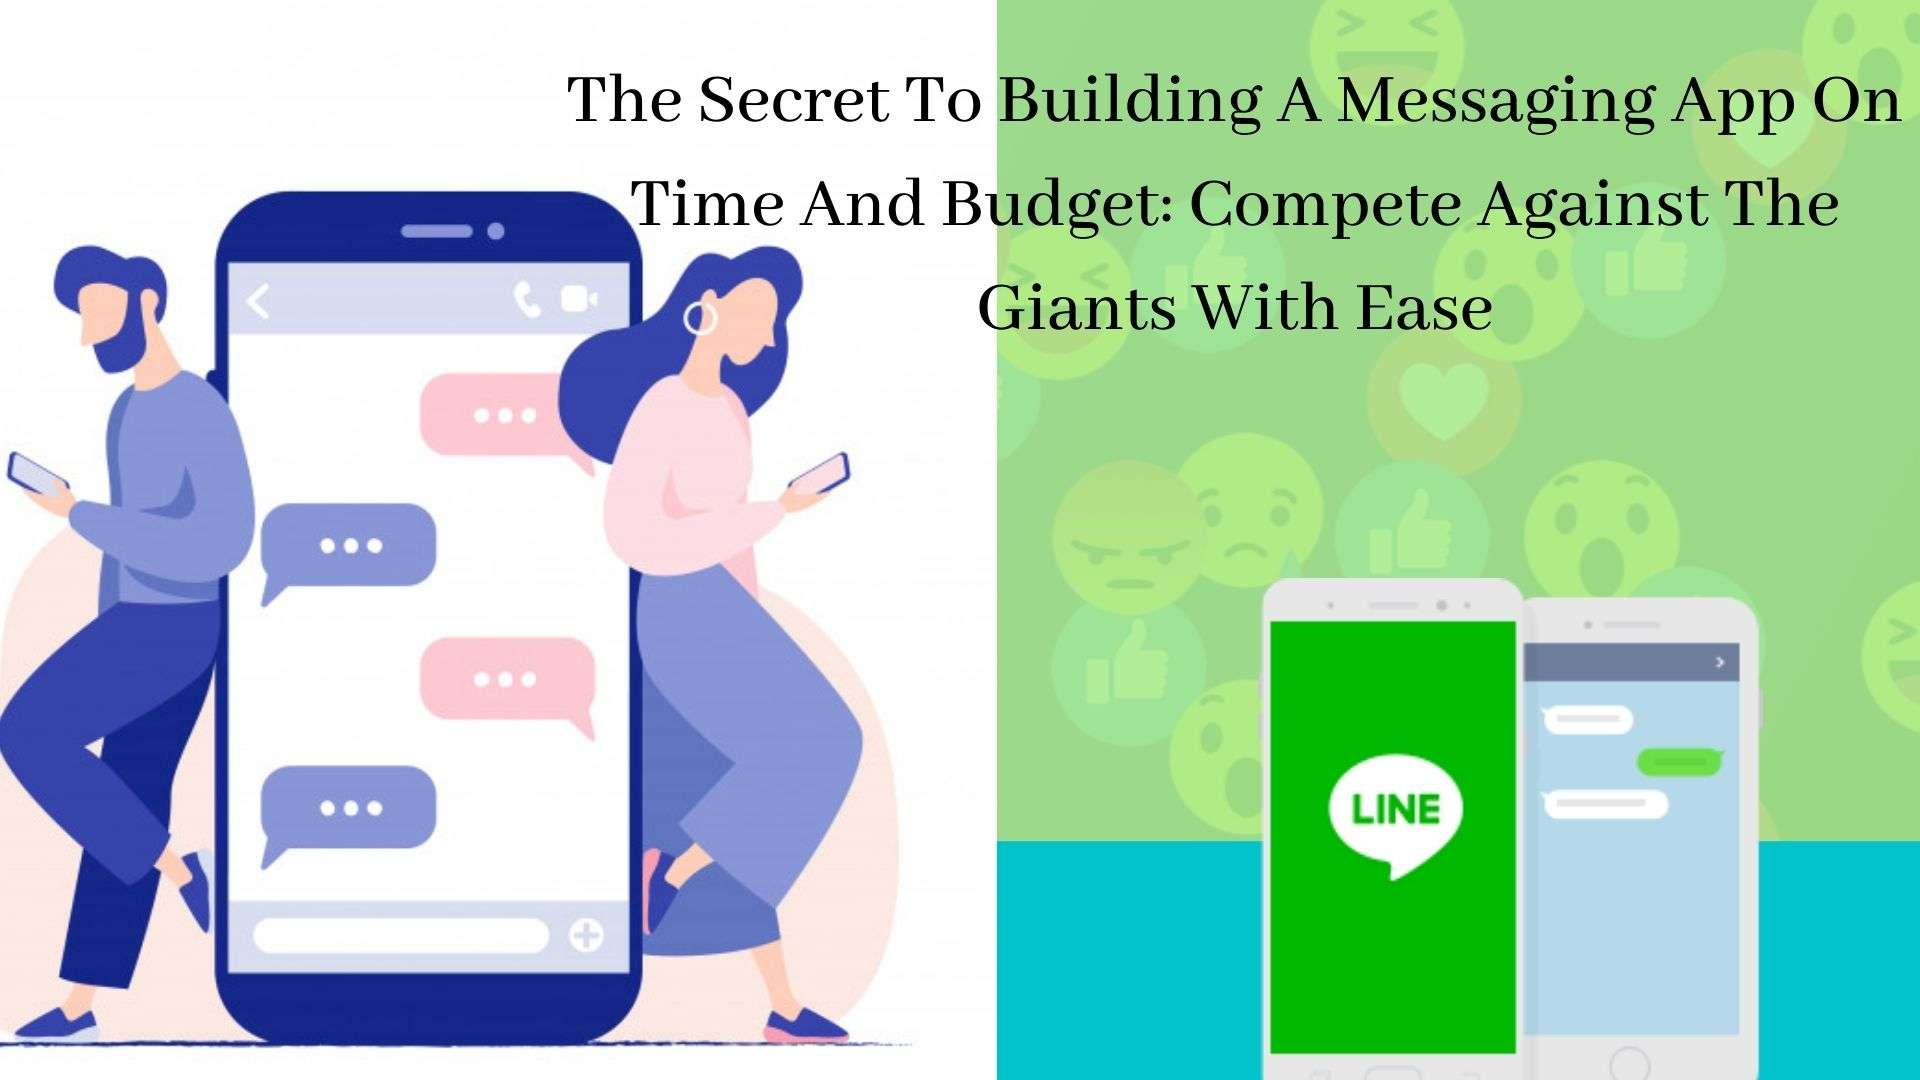 The Secret To Building A Messaging App On Time And Budget